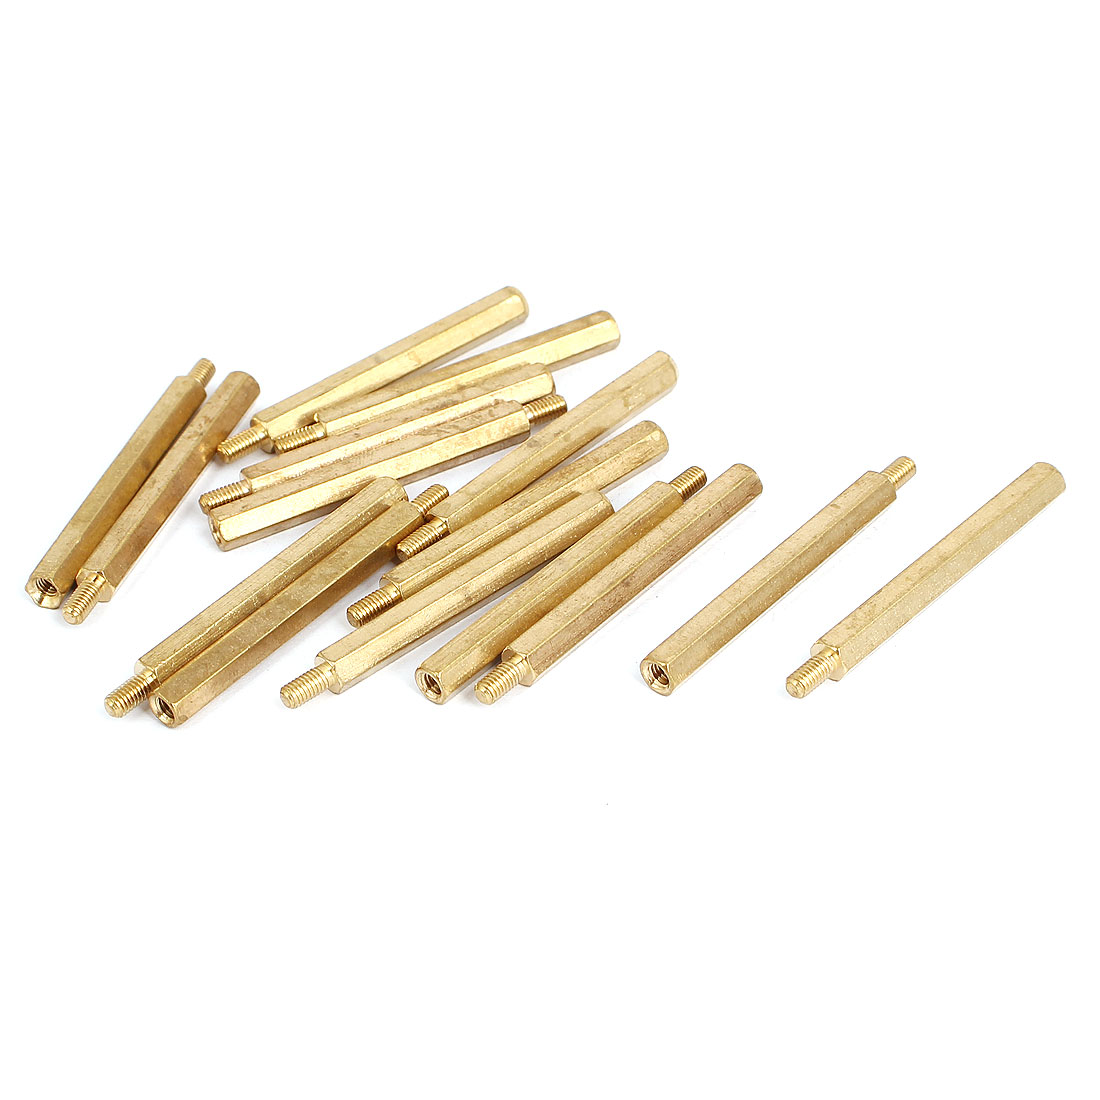 M3 Male to Female Thread Insulated Brass Standoff Hexagonal Spacer 40+6mm Long 15pcs